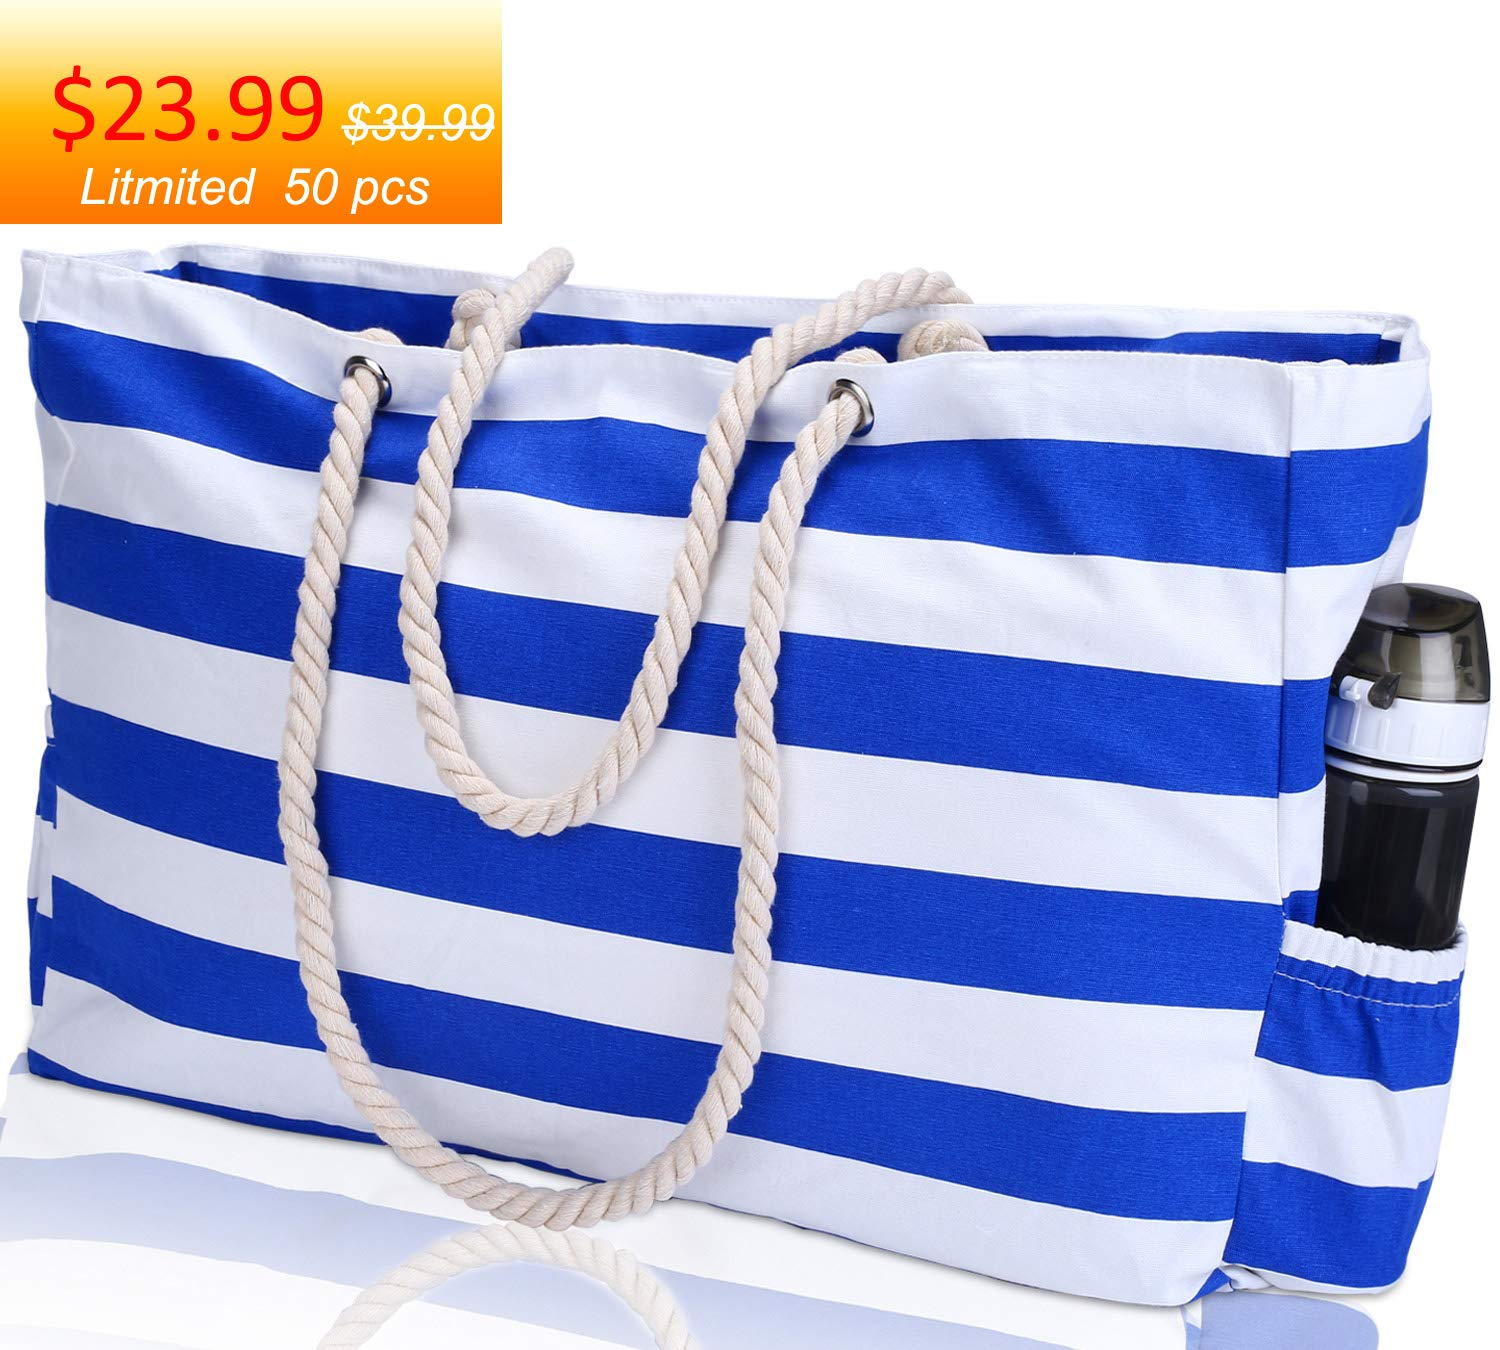 KUAK Beach Bag, Extra Large Canvas Beach Tote with 100% Waterproof Phone Case, Top Zipper, Cotton Rope Handles, Two Elastic Outside Pockets, Key Holder, Bottle Opener, Oversized Shoulder Beach Bag